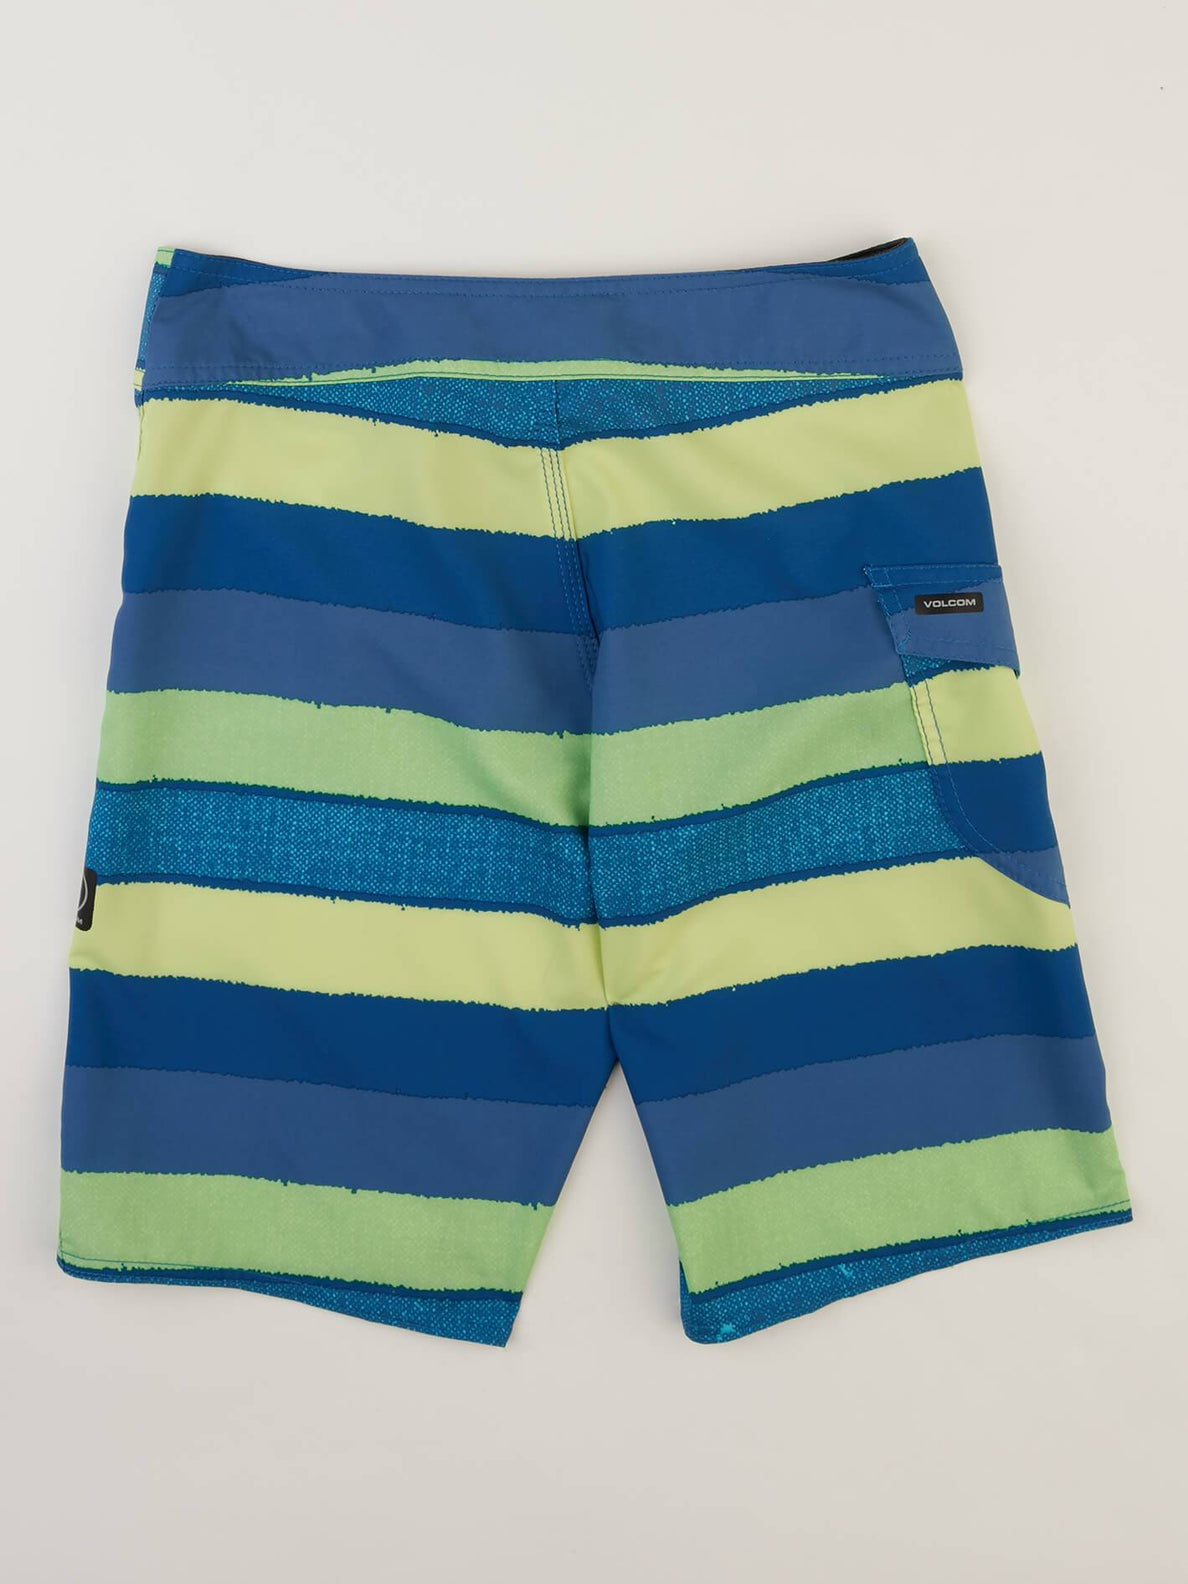 Big Boys Magnetic Liney Mod Boardshorts In Shadow Lime, Back View